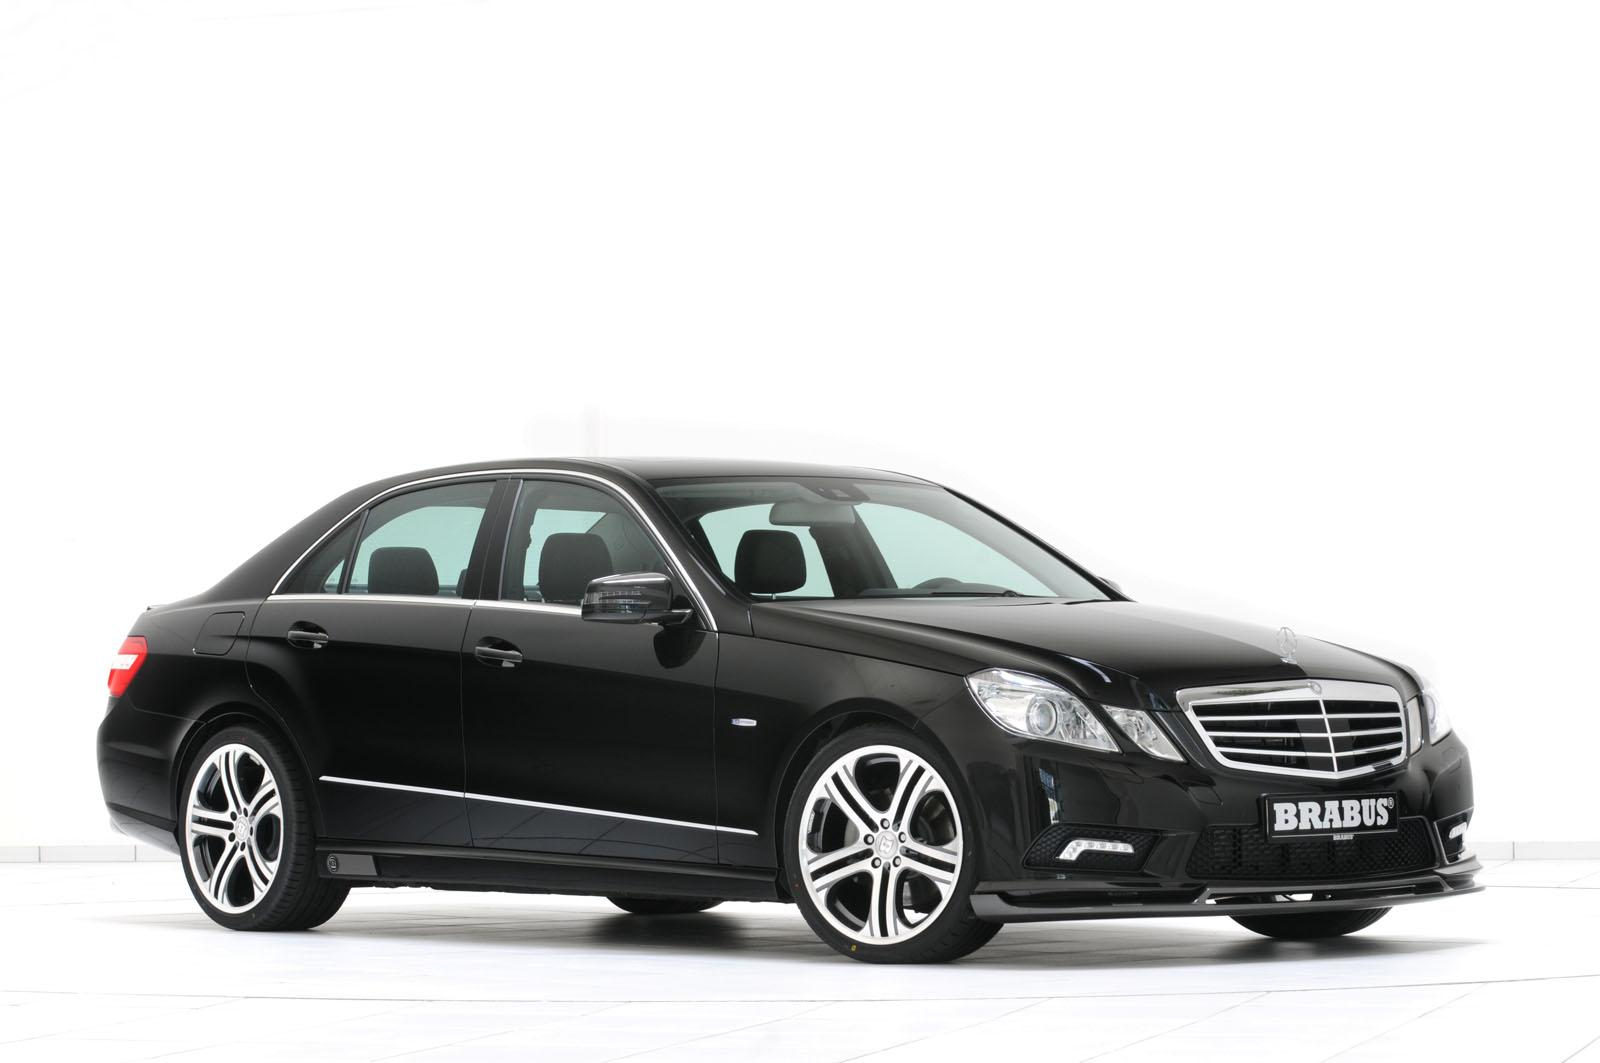 Brabus E and S class Mercedes 15 Brabus launches new tuning program for E  and S class Mercedes